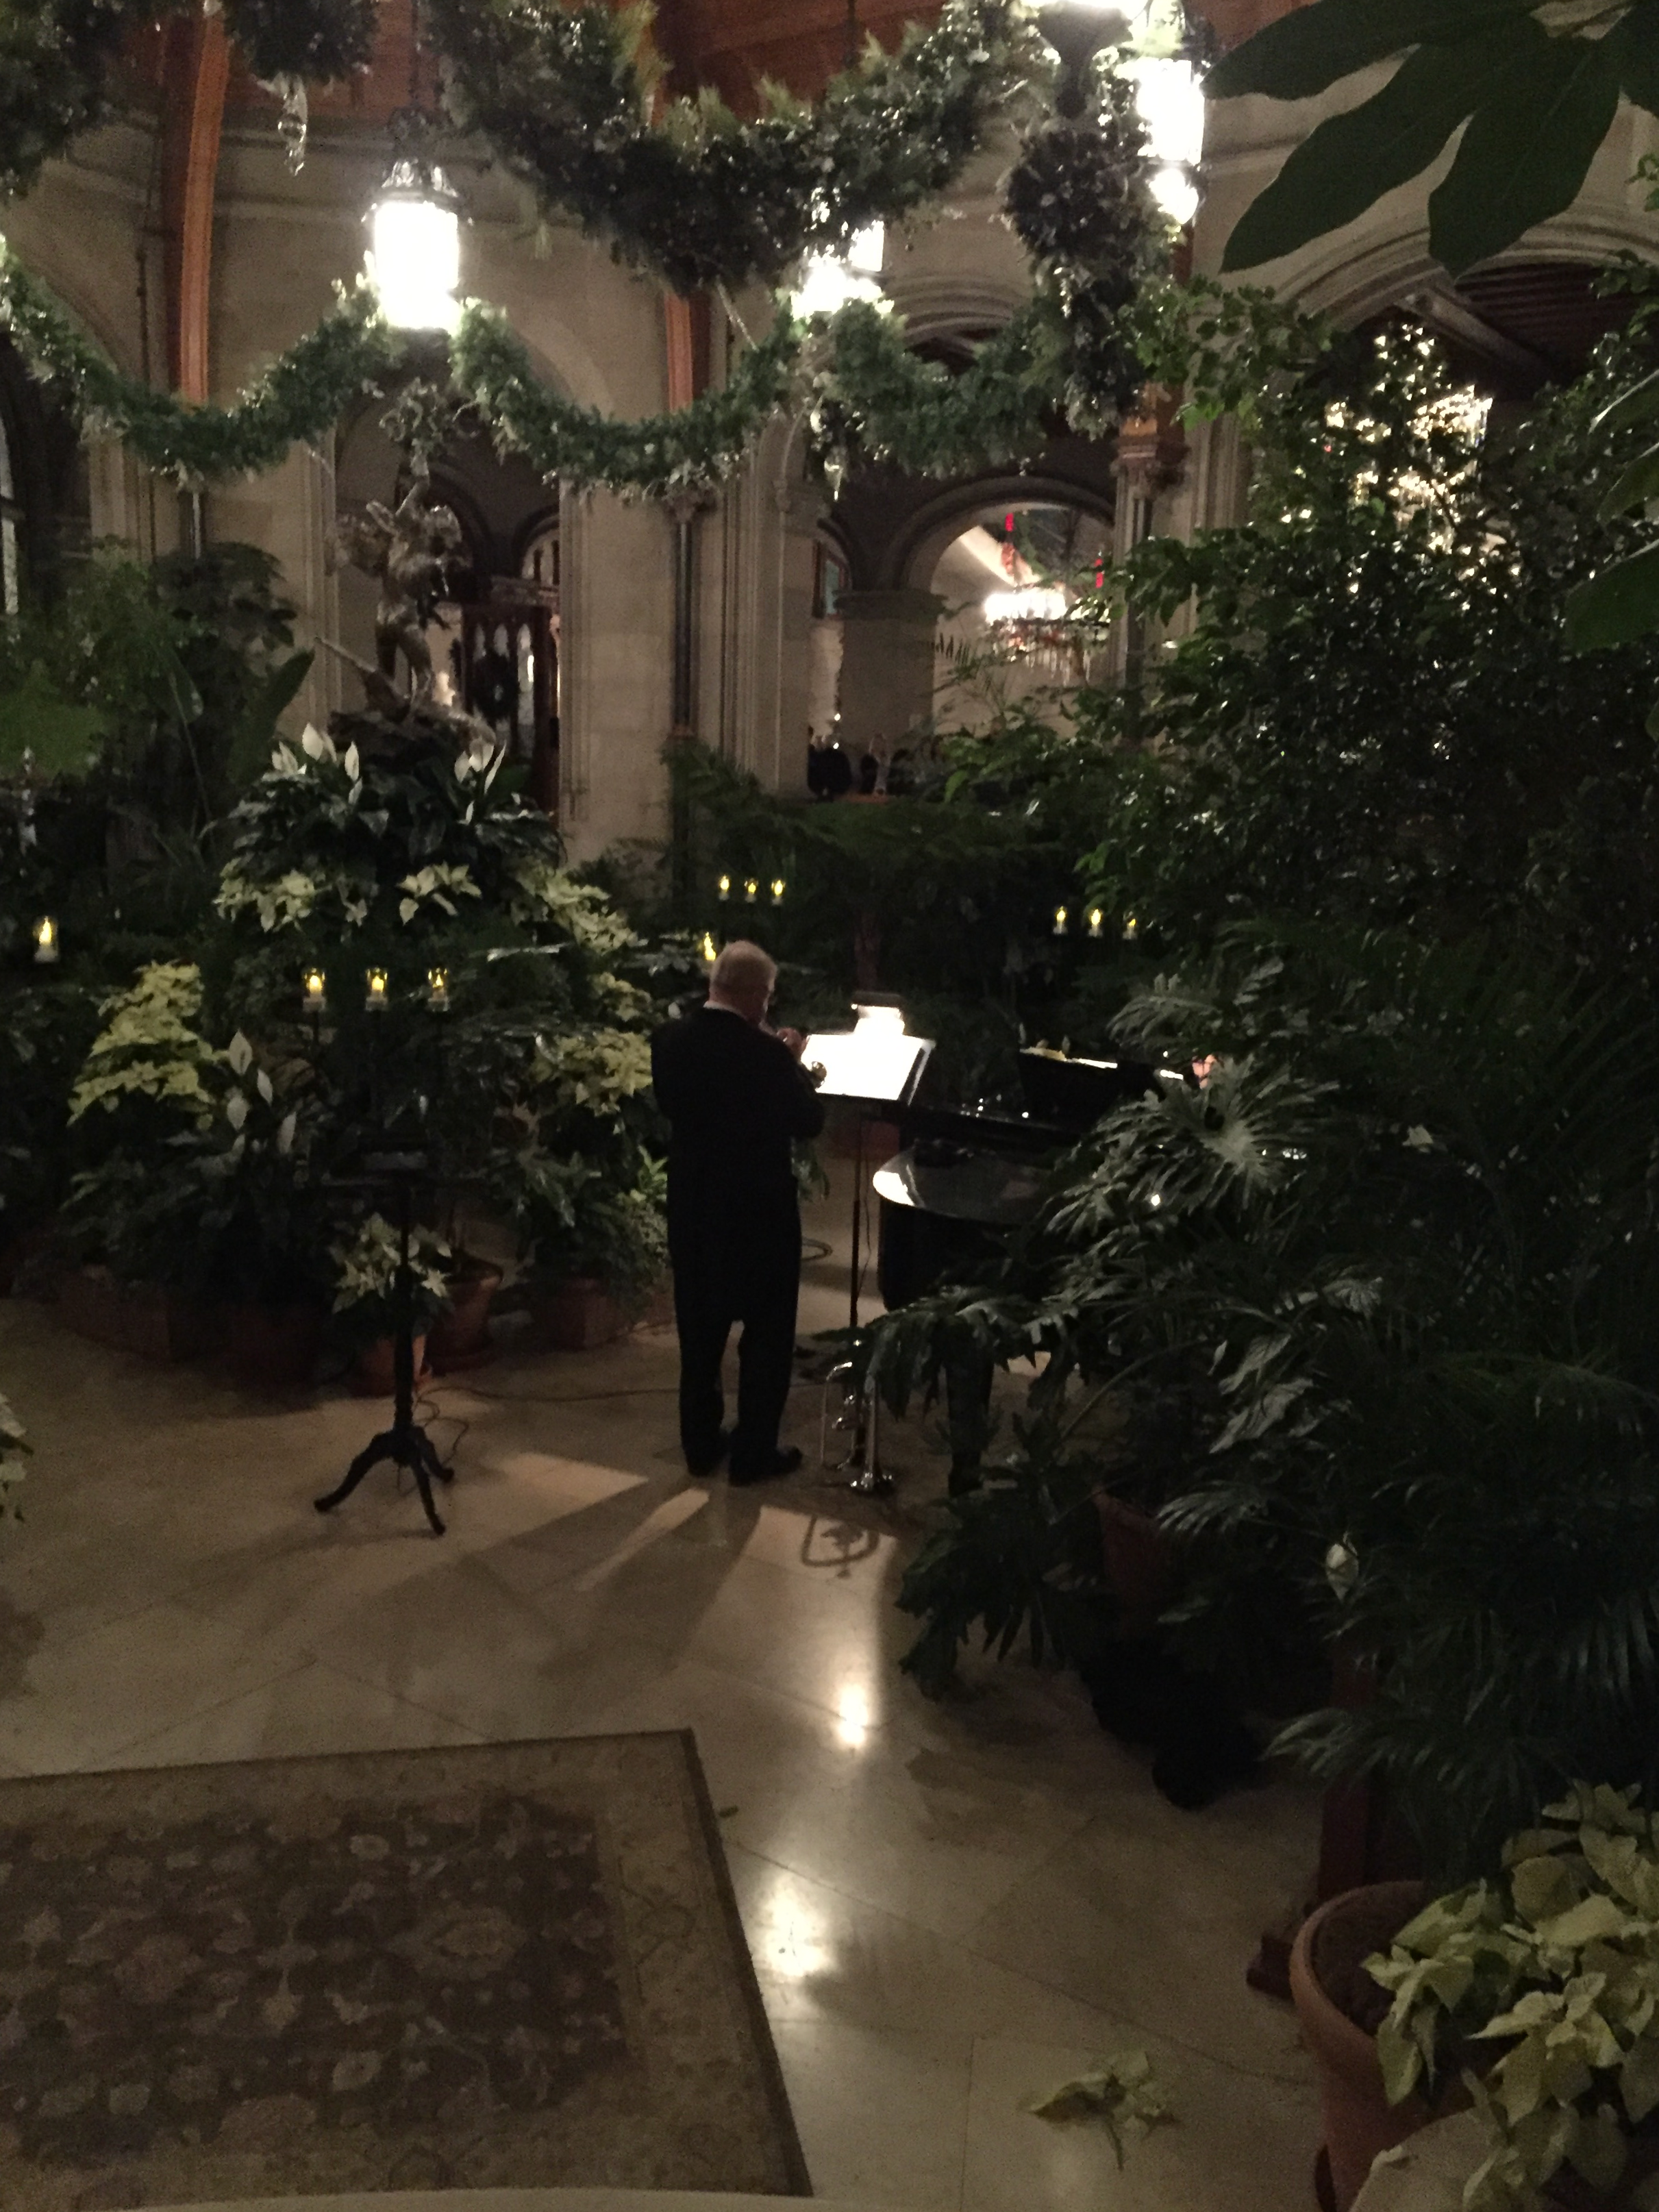 A musician plays amid the greenery in the atrium.